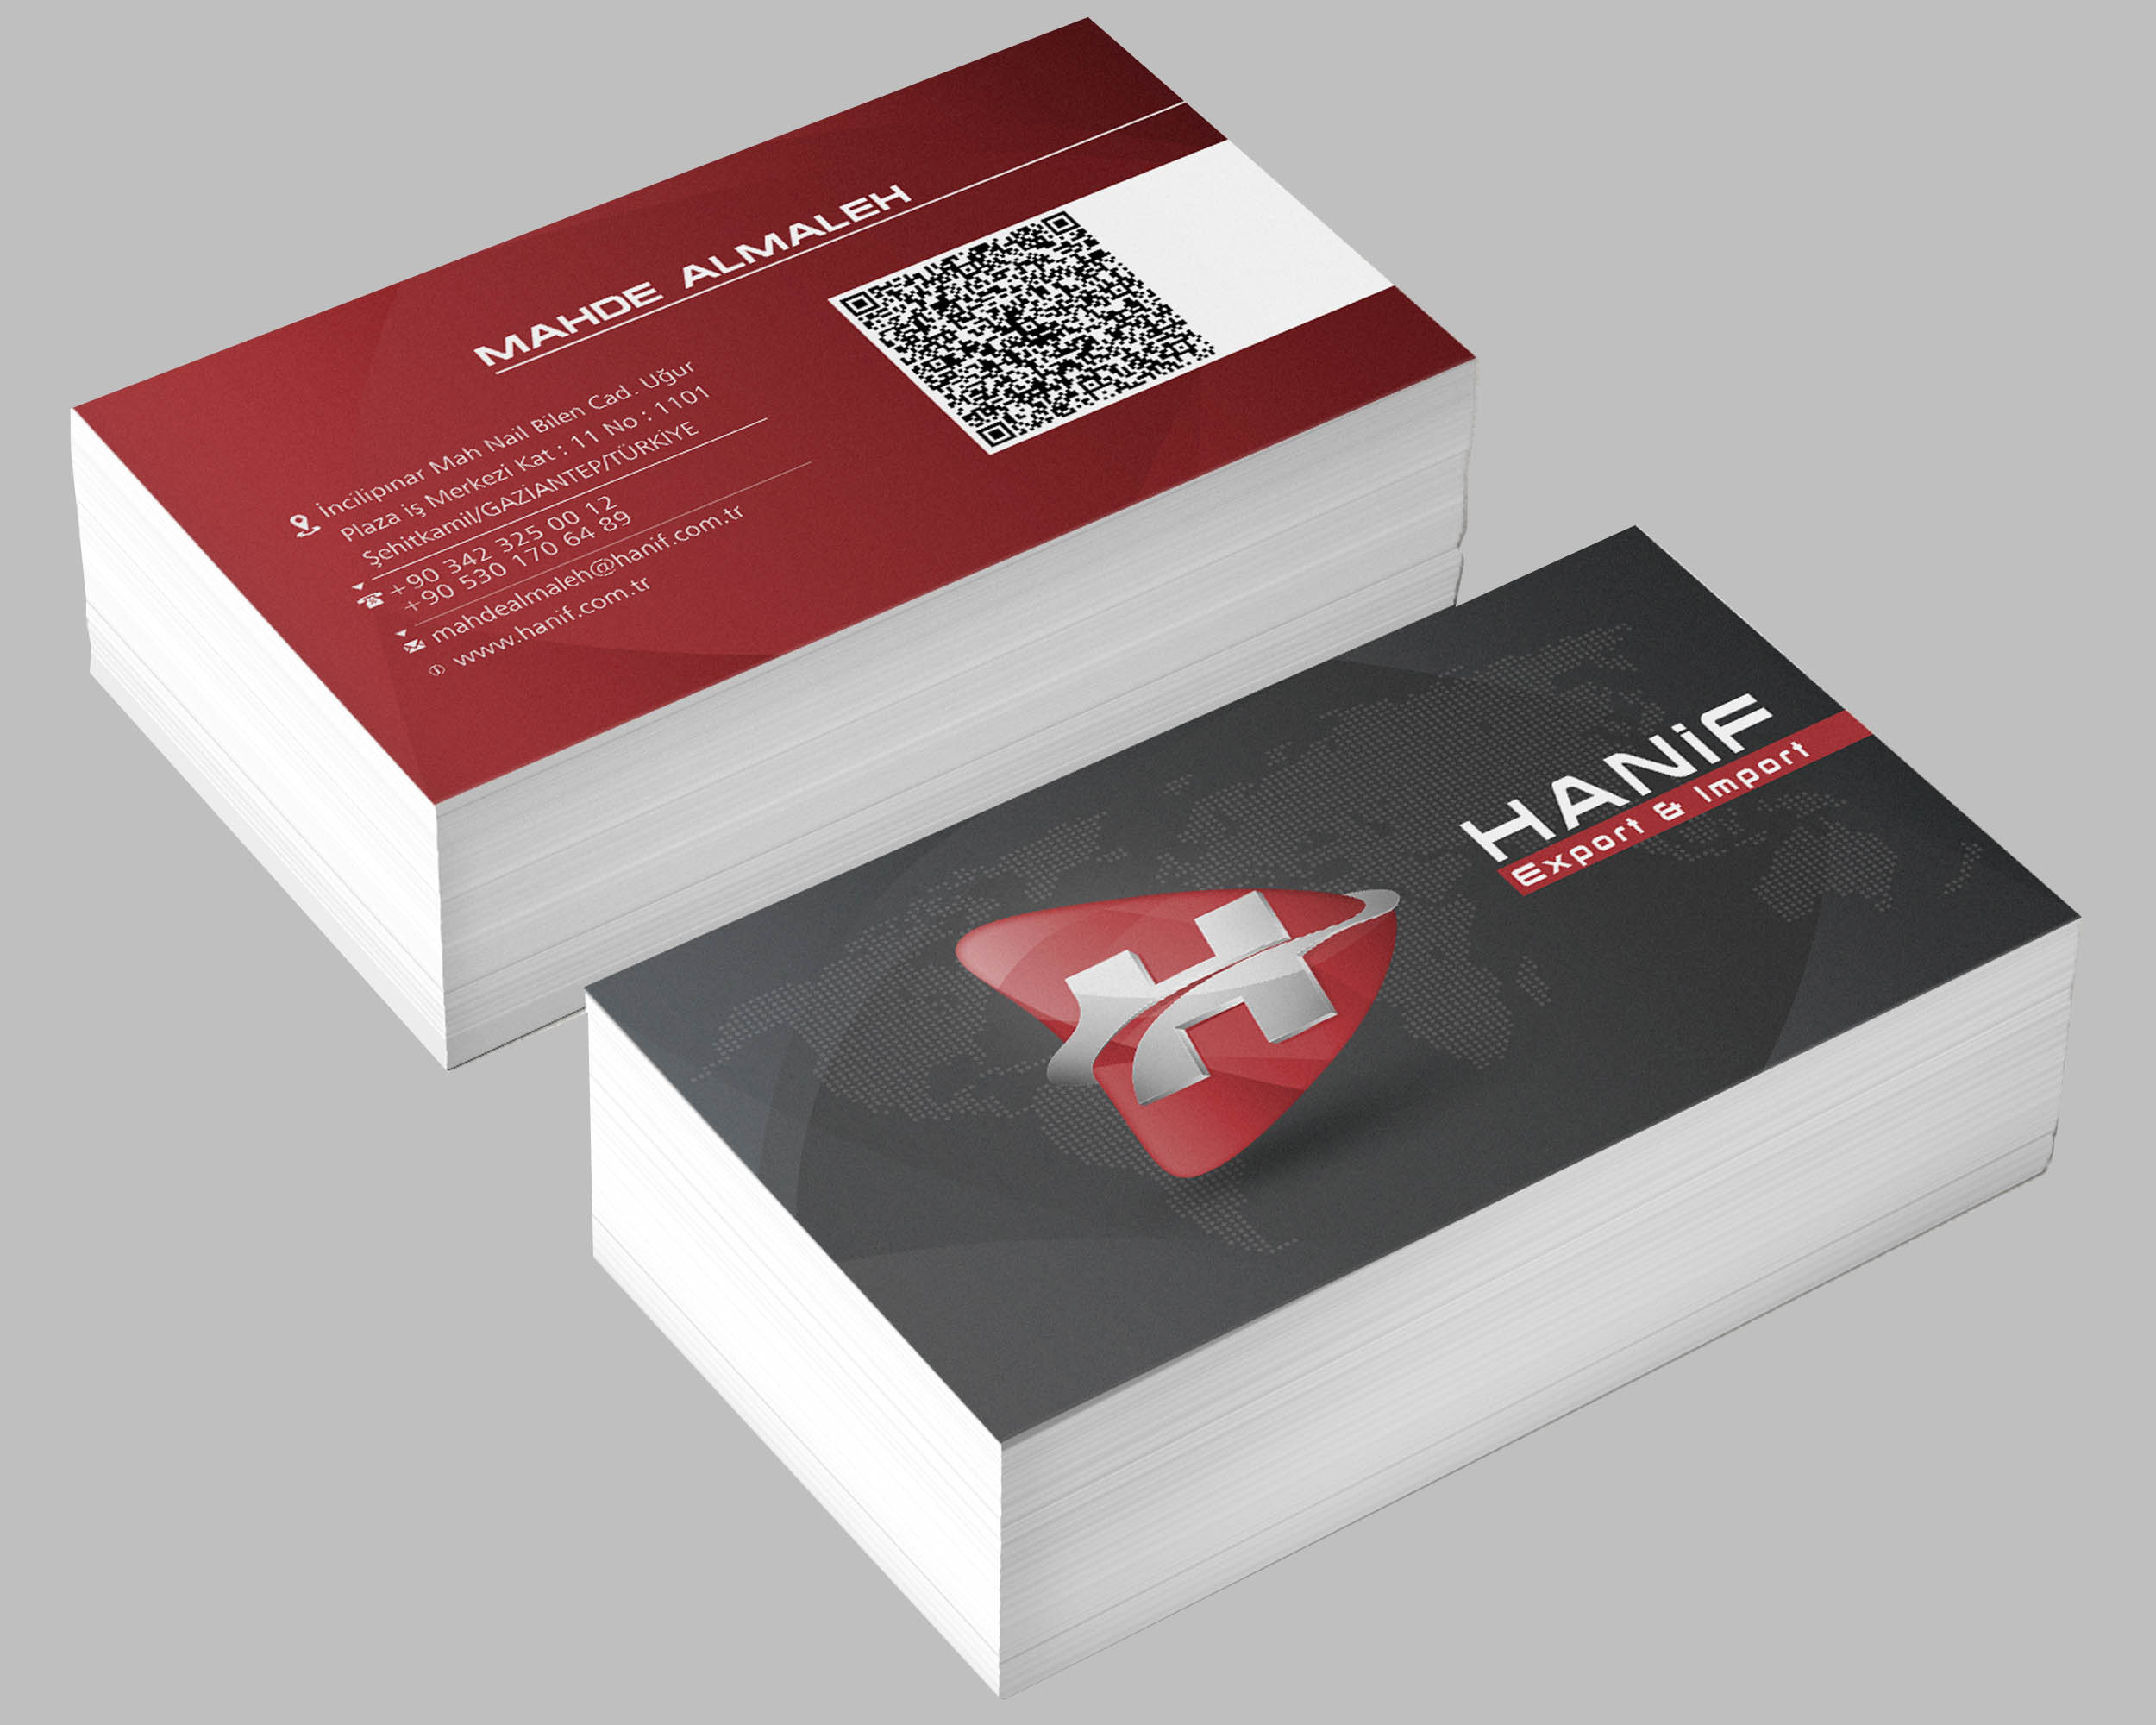 Redline las vegas luxury printing and same day rush services 1 1 business cards 35 colourmoves